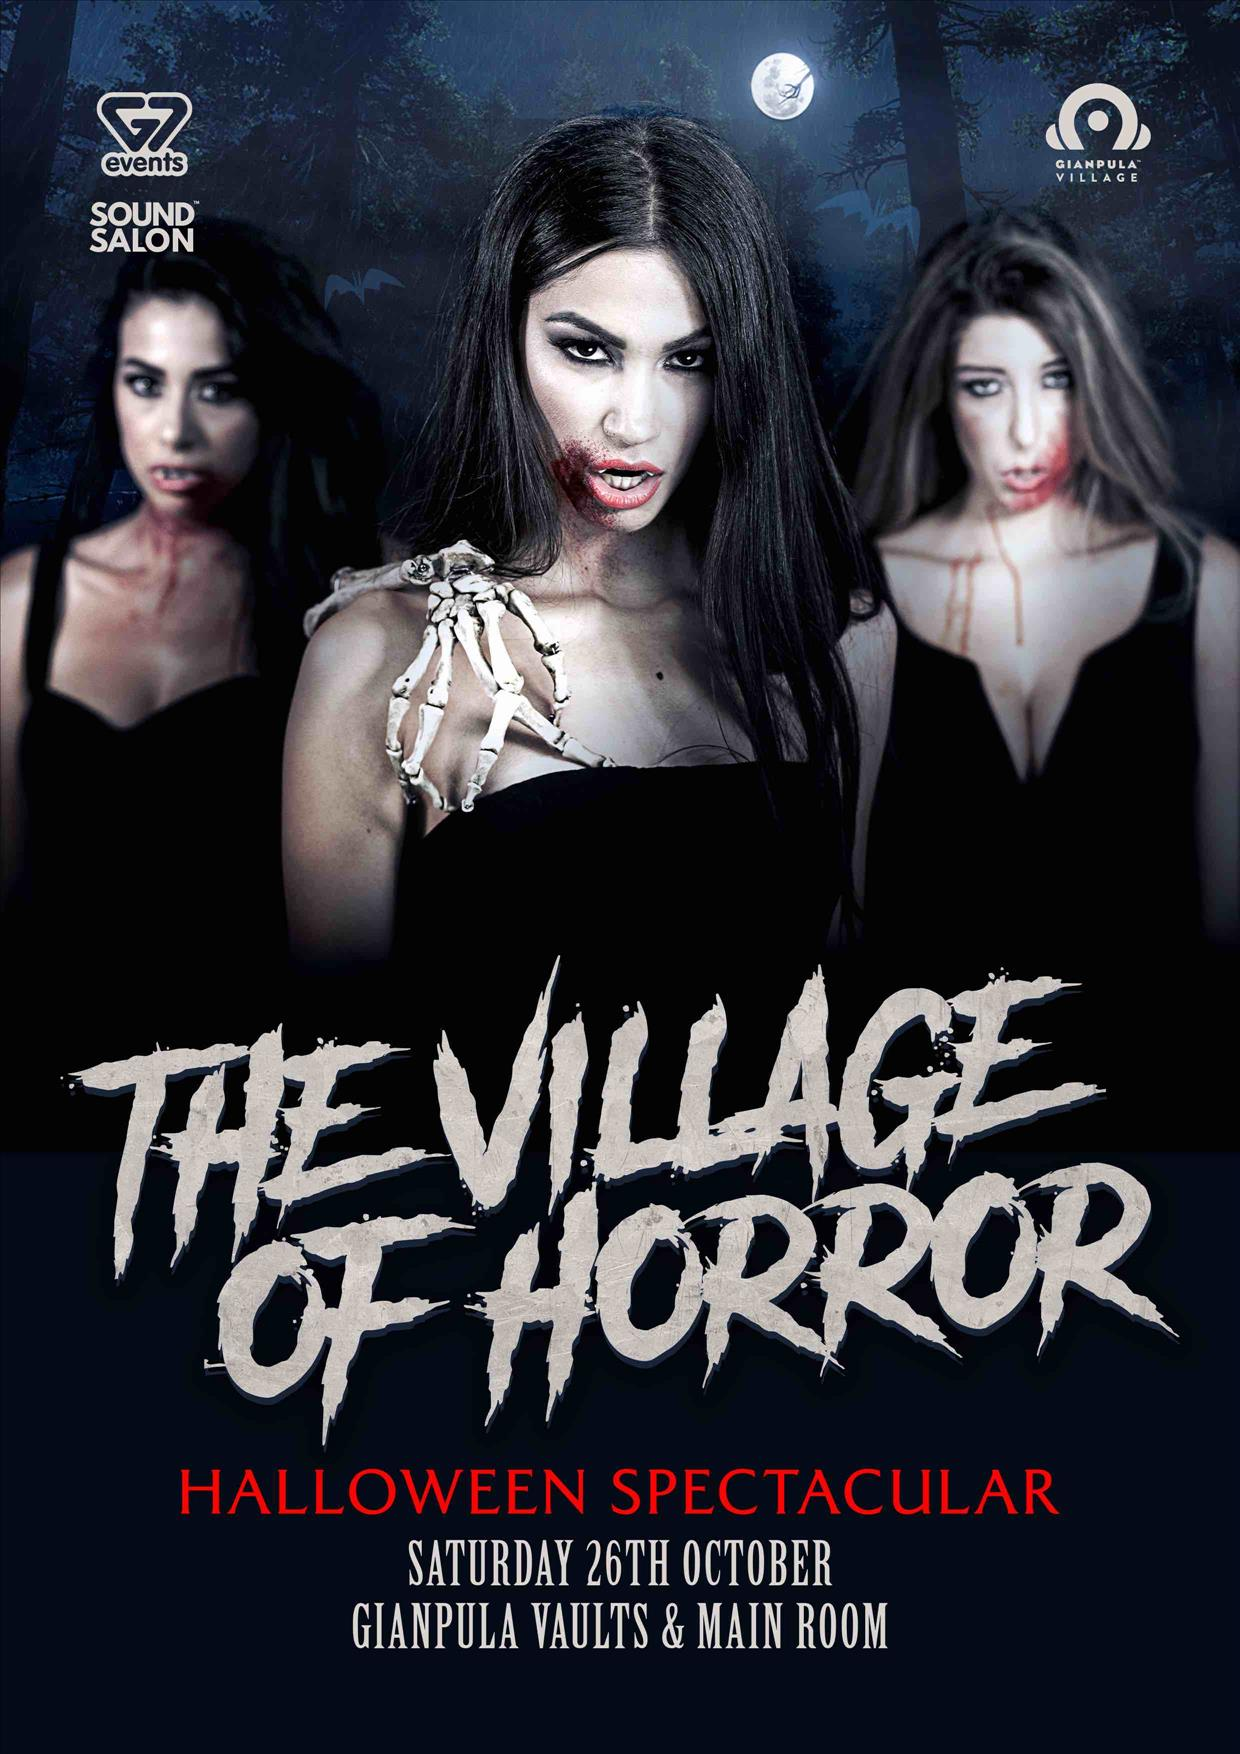 The Village of Horror- Halloween Spectacular flyer